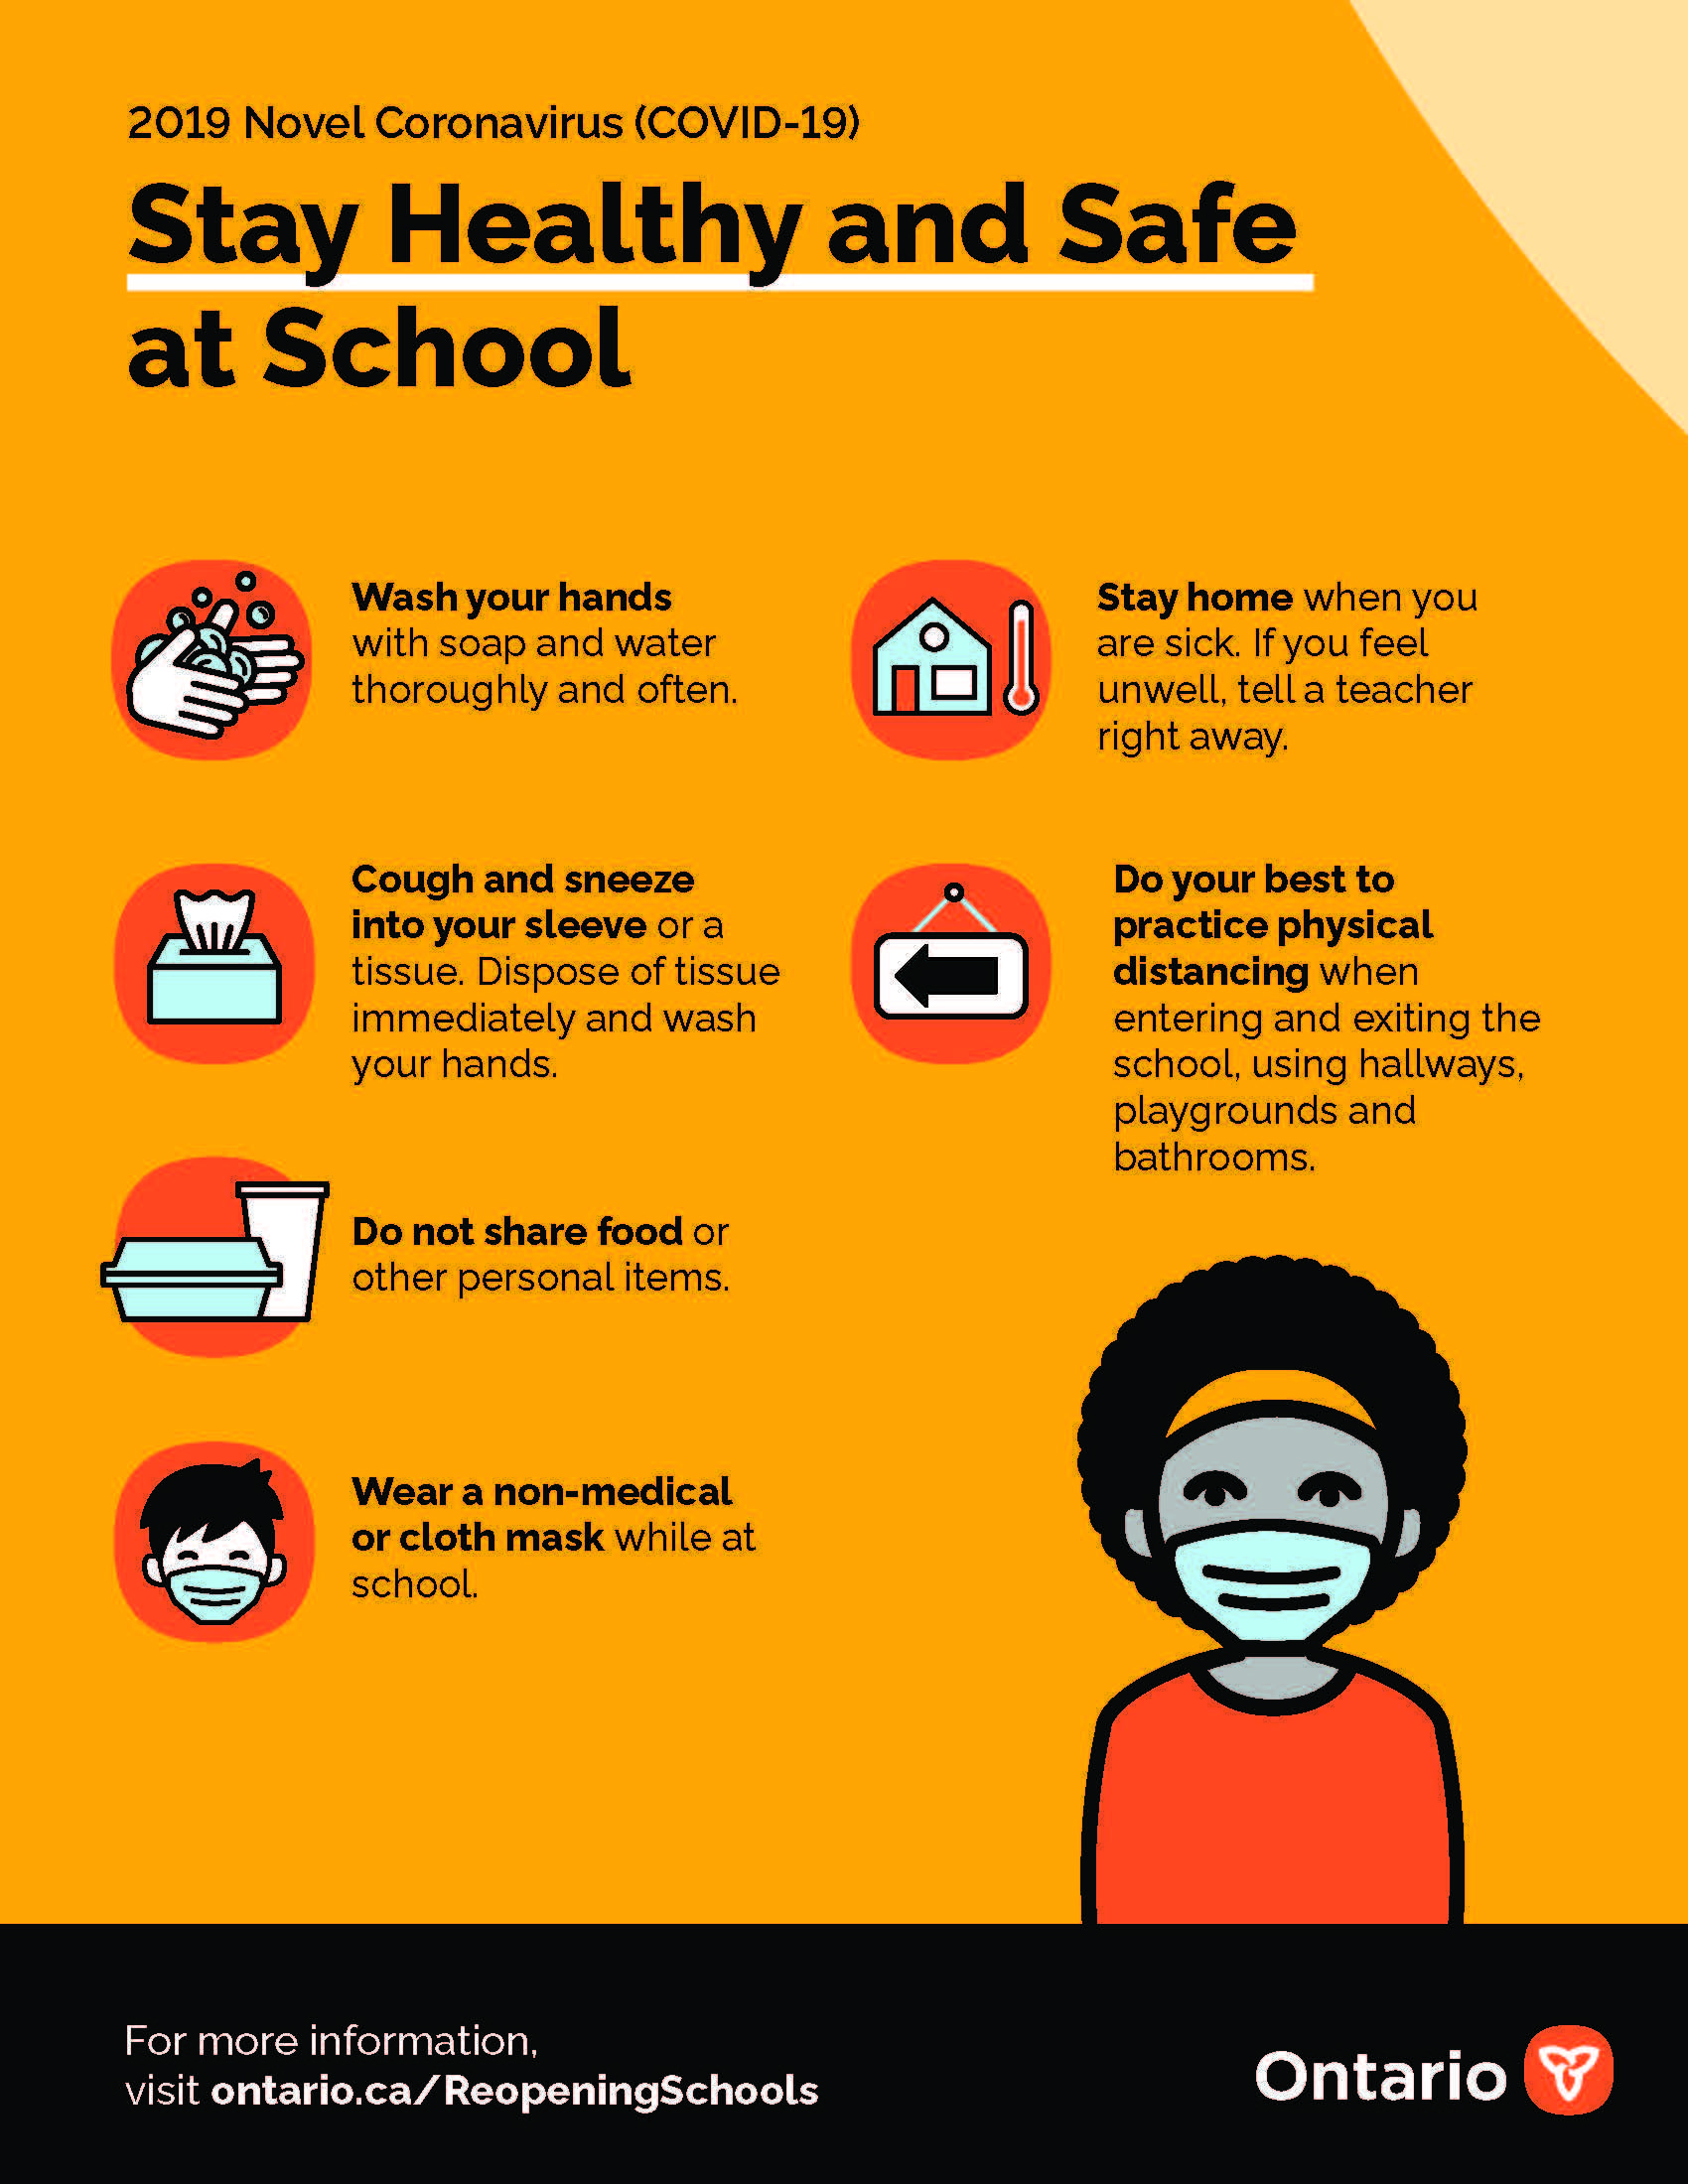 Stay Healthy at School